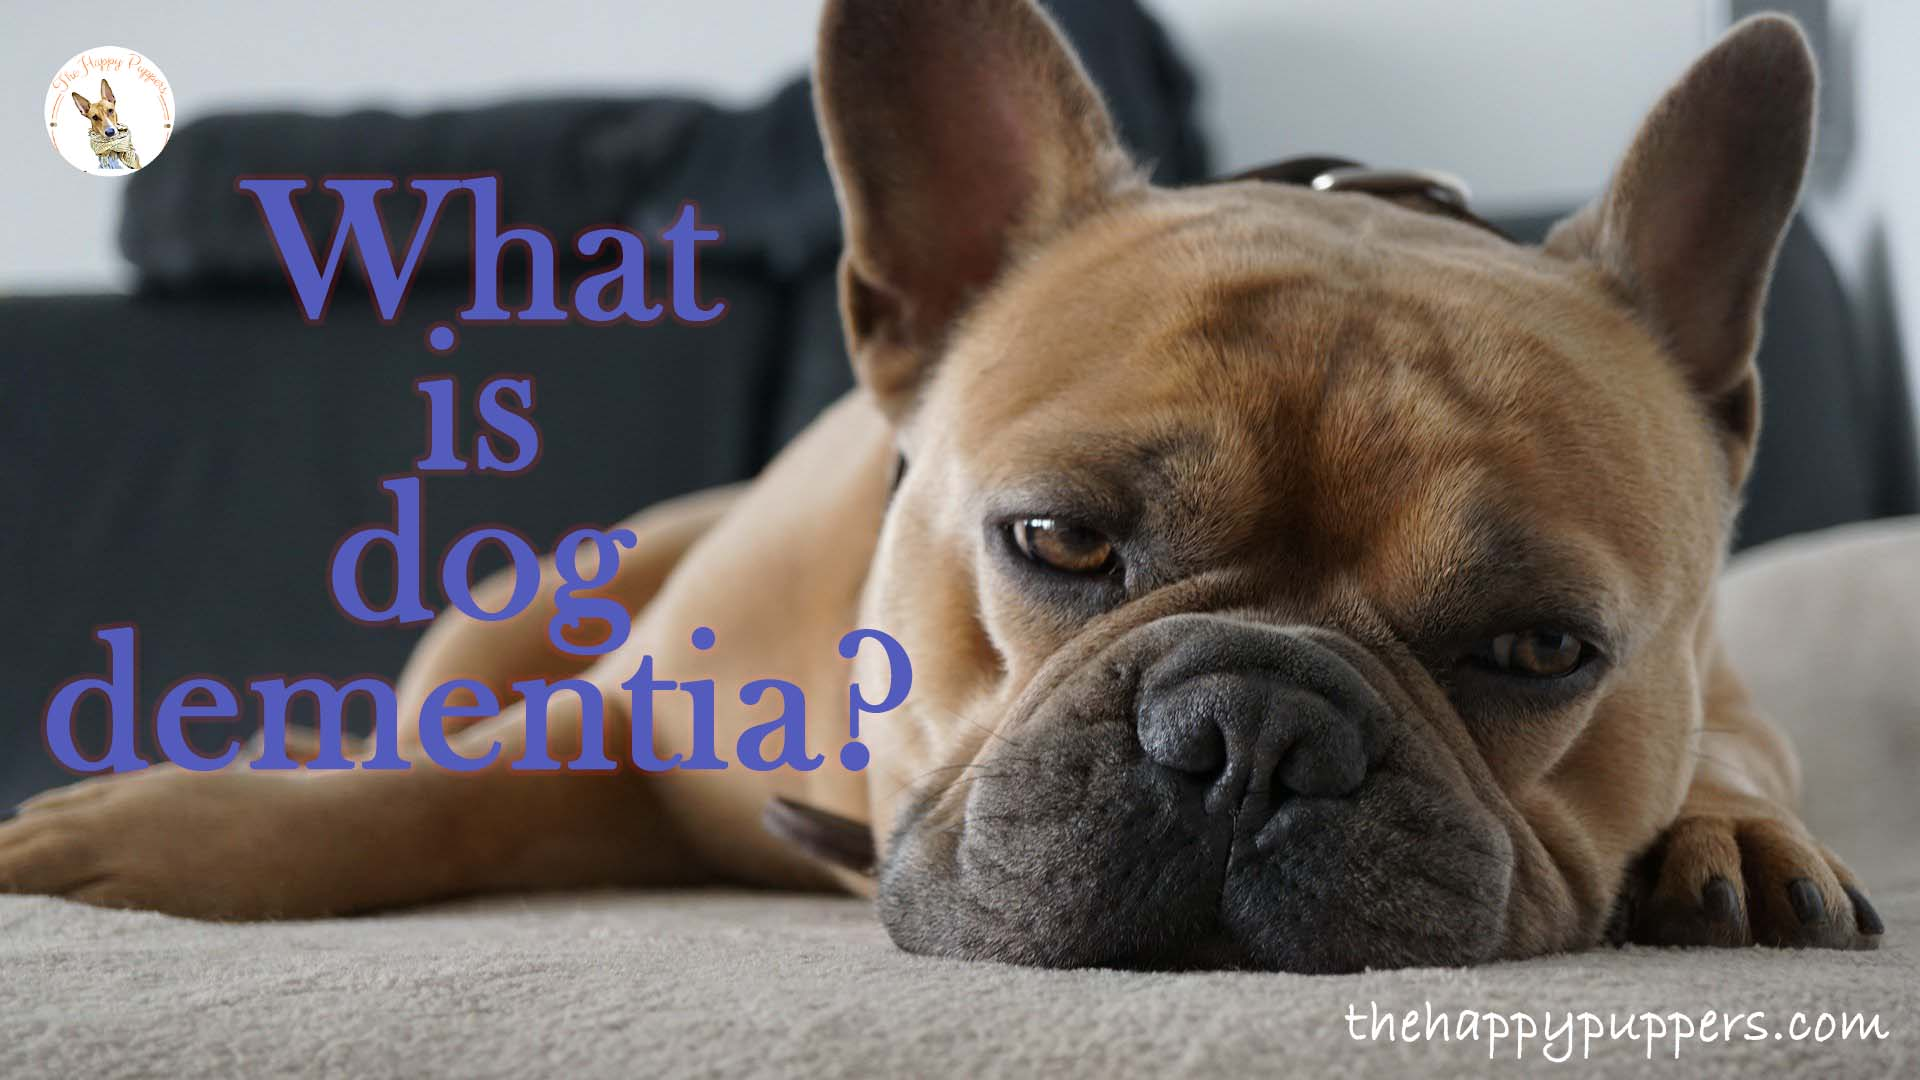 What is dog dementia?